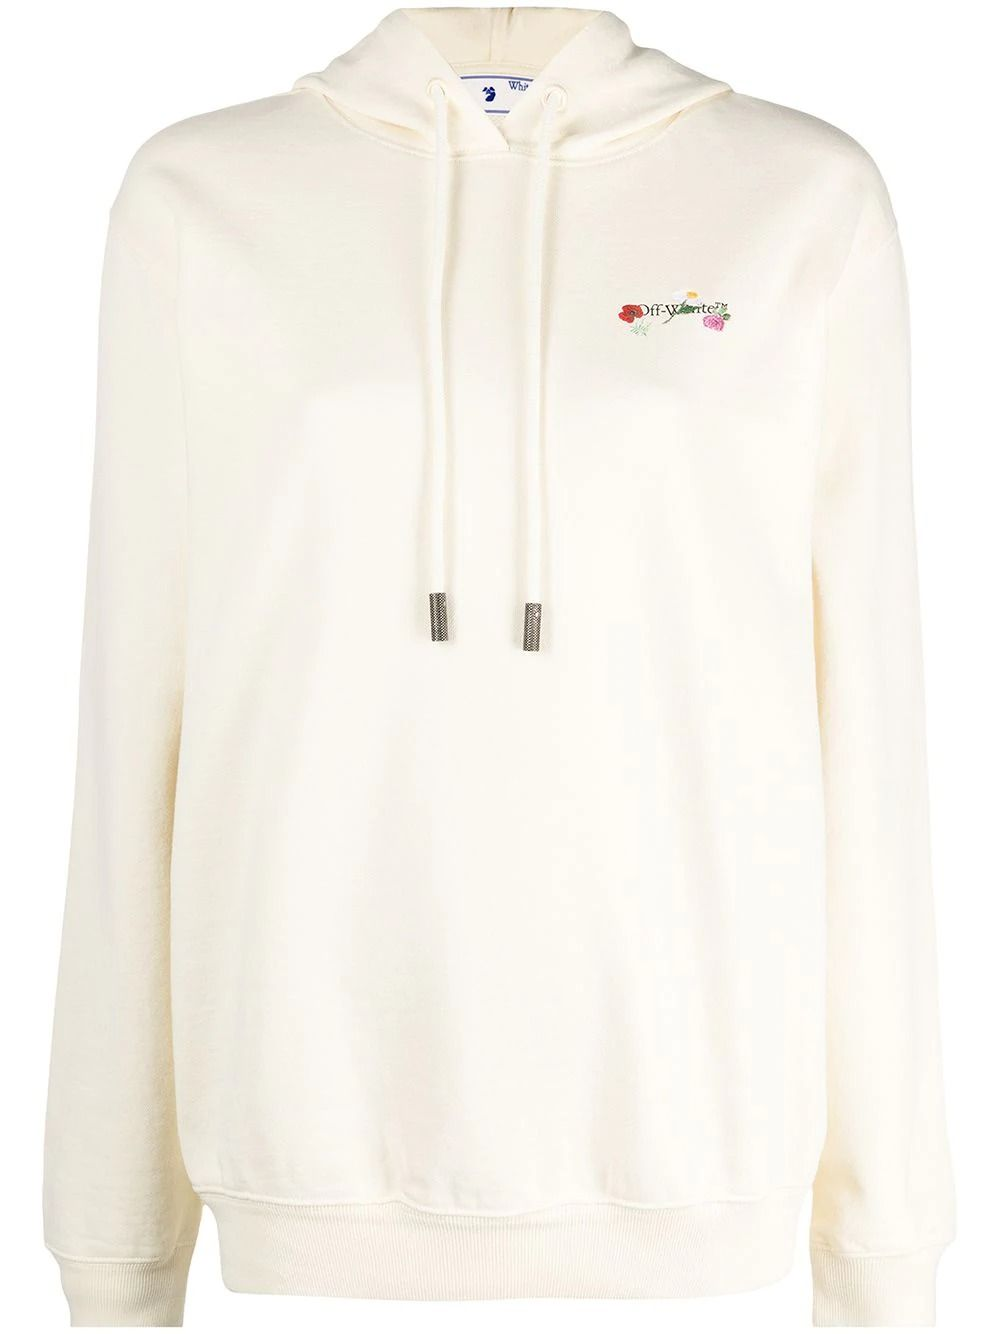 OFF-WHITE Sweatshirts OFF-WHITE WOMEN'S BEIGE COTTON SWEATSHIRT